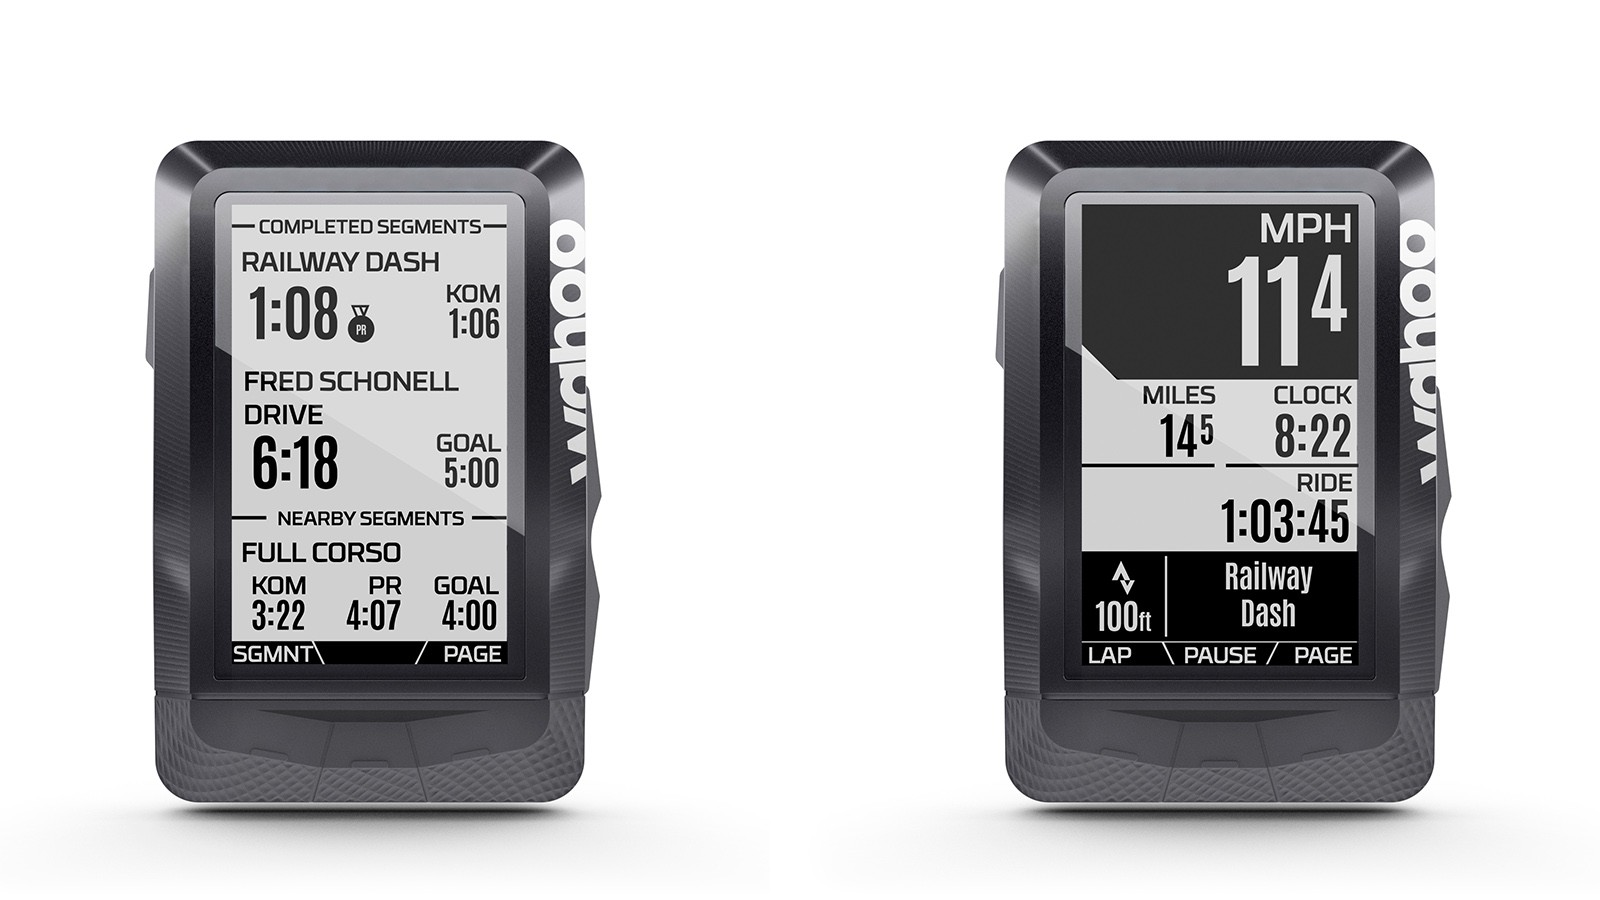 After each completed Segment, the Elemnt shows a status page. Riders choose which Segments are activated on their Elemnt by starring them on Strava.com